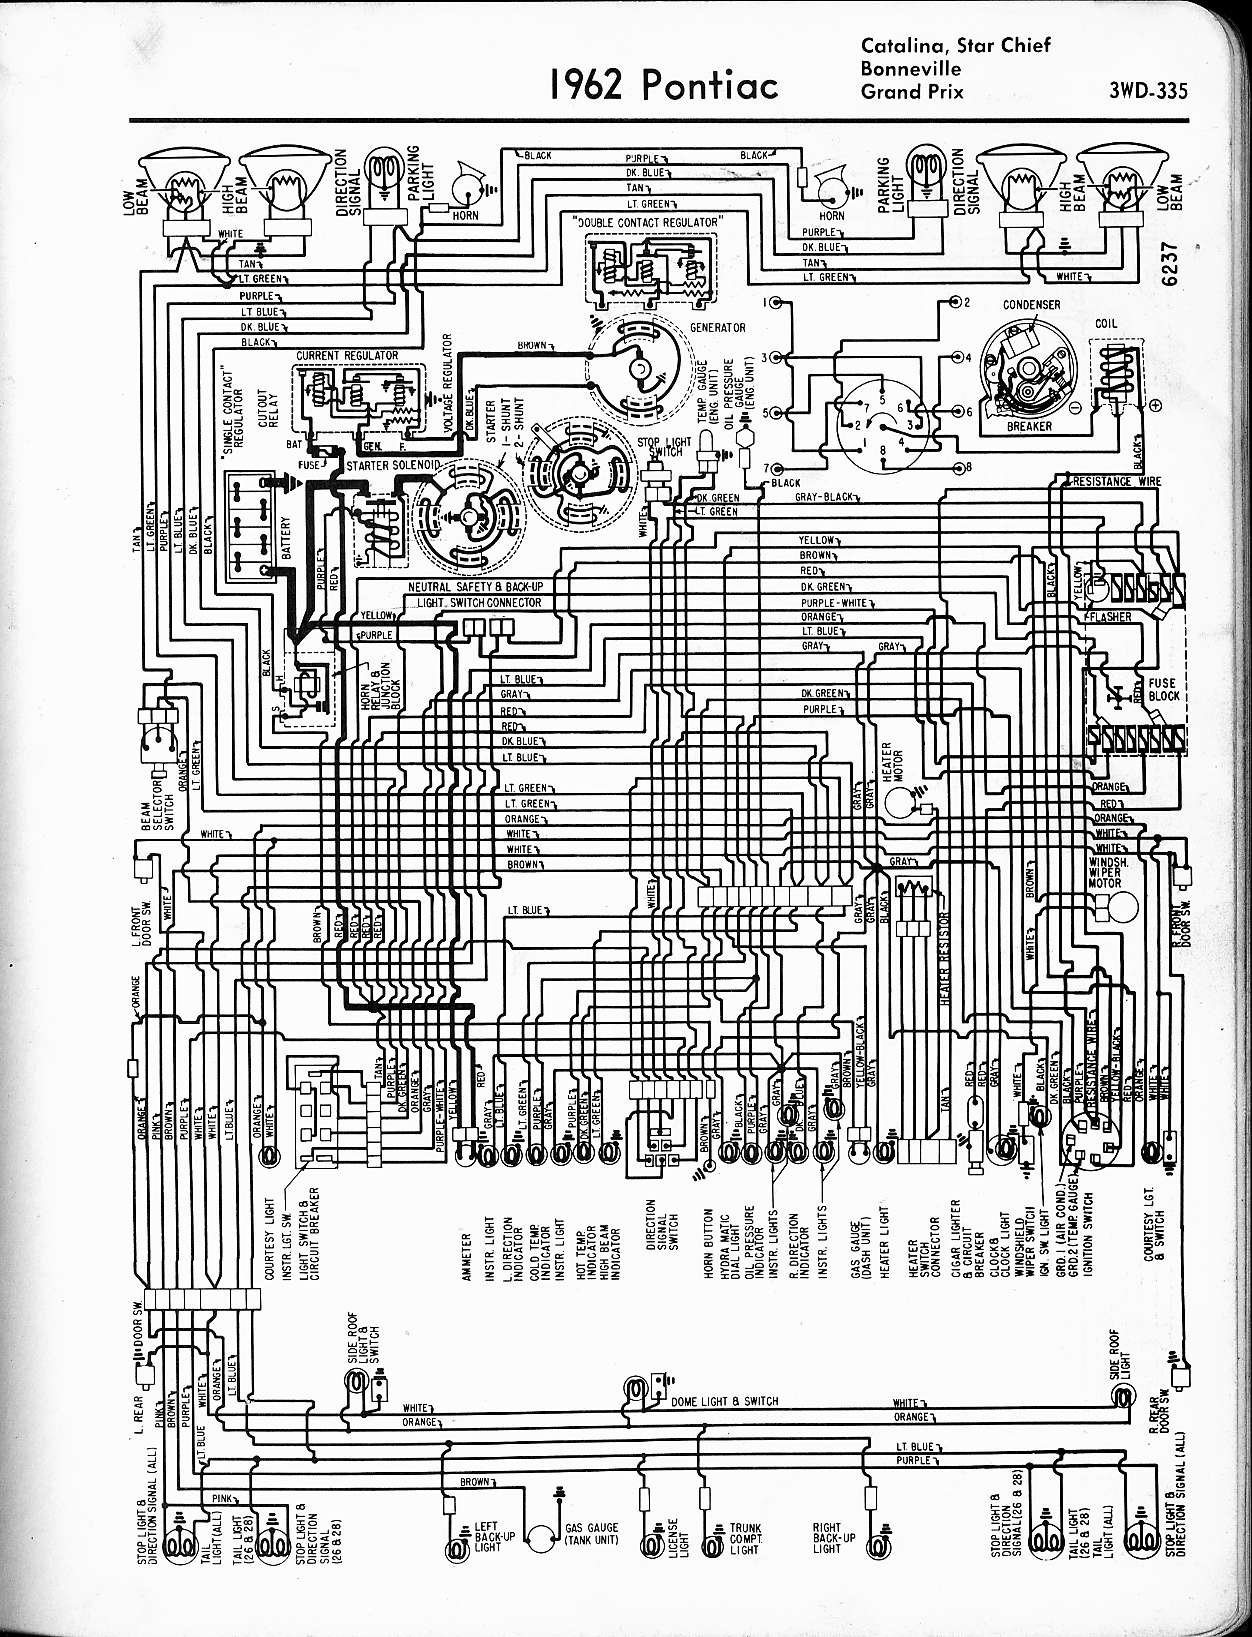 Wiring Diagram For Pontiac Grand Prix - Today Wiring Diagram on 1992 pontiac bonneville wiring diagram, 1999 pontiac grand prix wiring diagram, 1997 pontiac grand prix wiring diagram, 2002 pontiac grand prix wiring diagram, 1994 pontiac grand prix wiring diagram, 2001 pontiac grand prix firing order, 1994 pontiac firebird wiring diagram, 2002 grand prix radio wiring diagram, 2006 pontiac grand prix wiring diagram, 2001 pontiac grand prix oil pump, 2007 pontiac grand prix wiring diagram, 2003 pontiac grand prix wiring diagram, 2004 pontiac grand prix wiring diagram, 2000 pontiac grand prix wiring diagram, 1998 pontiac grand prix wiring diagram, 2001 pontiac grand prix suspension, 2001 pontiac grand prix exhaust system, 1995 pontiac grand prix wiring diagram, 2004 pontiac aztek wiring diagram, 2005 pontiac grand prix wiring diagram,